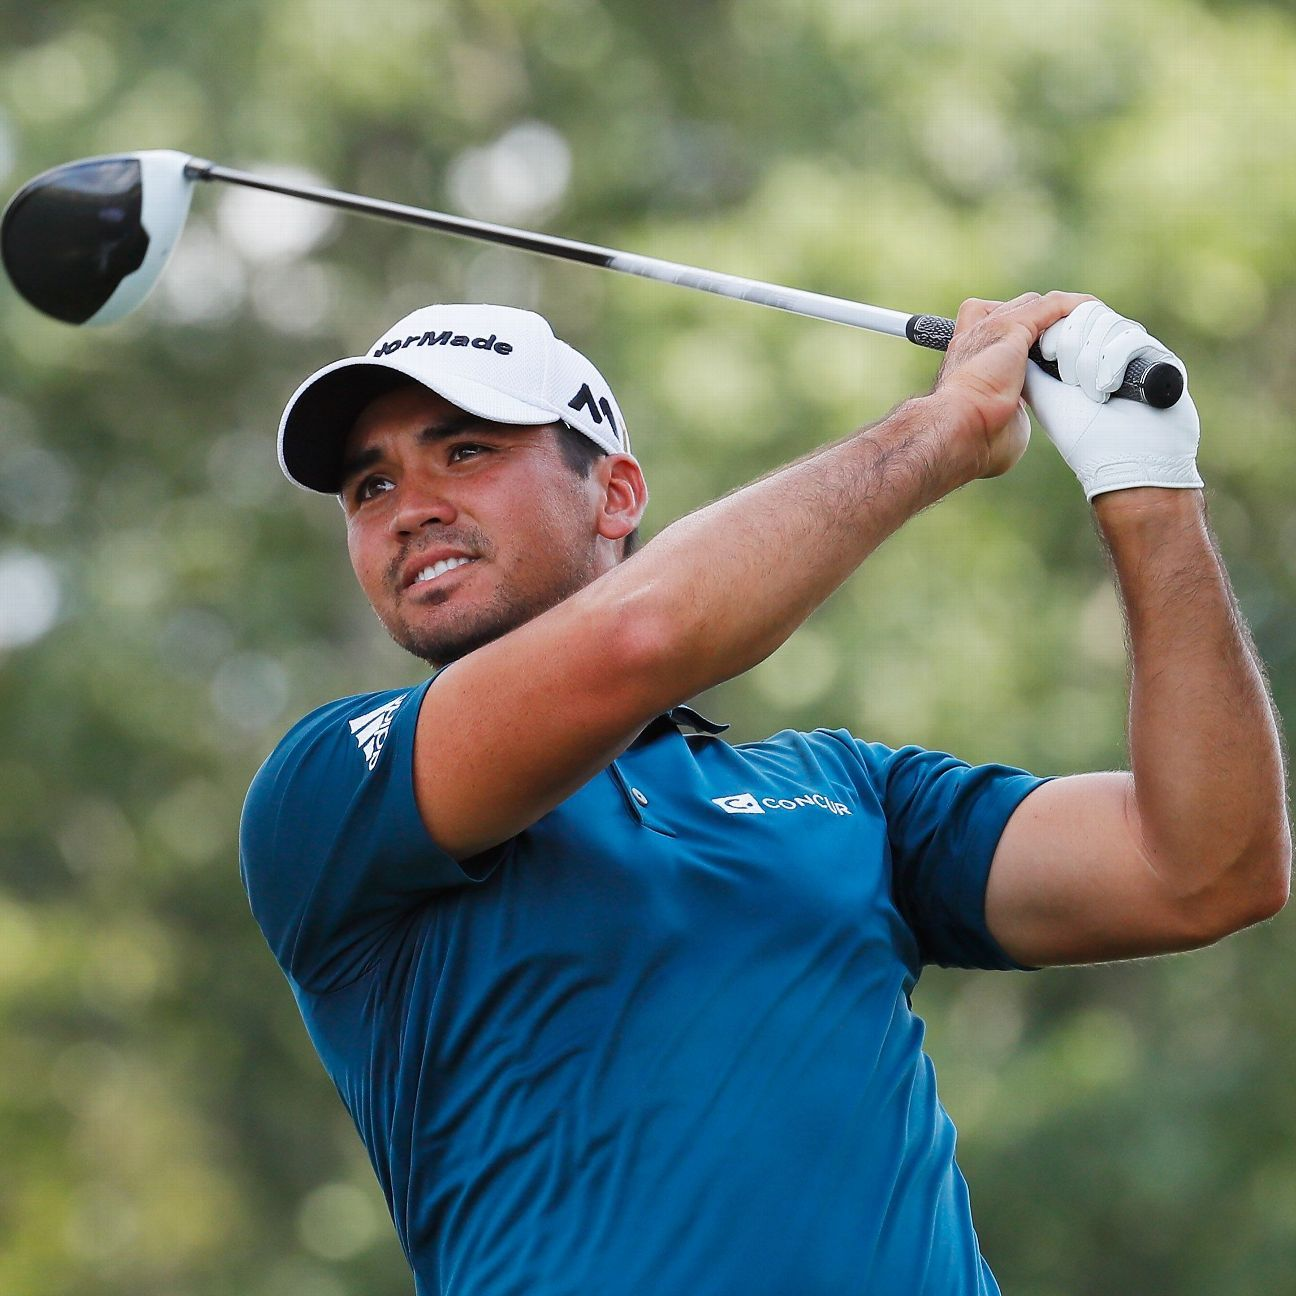 e14573ced05 Jason Day signs endorsement deal with Nike